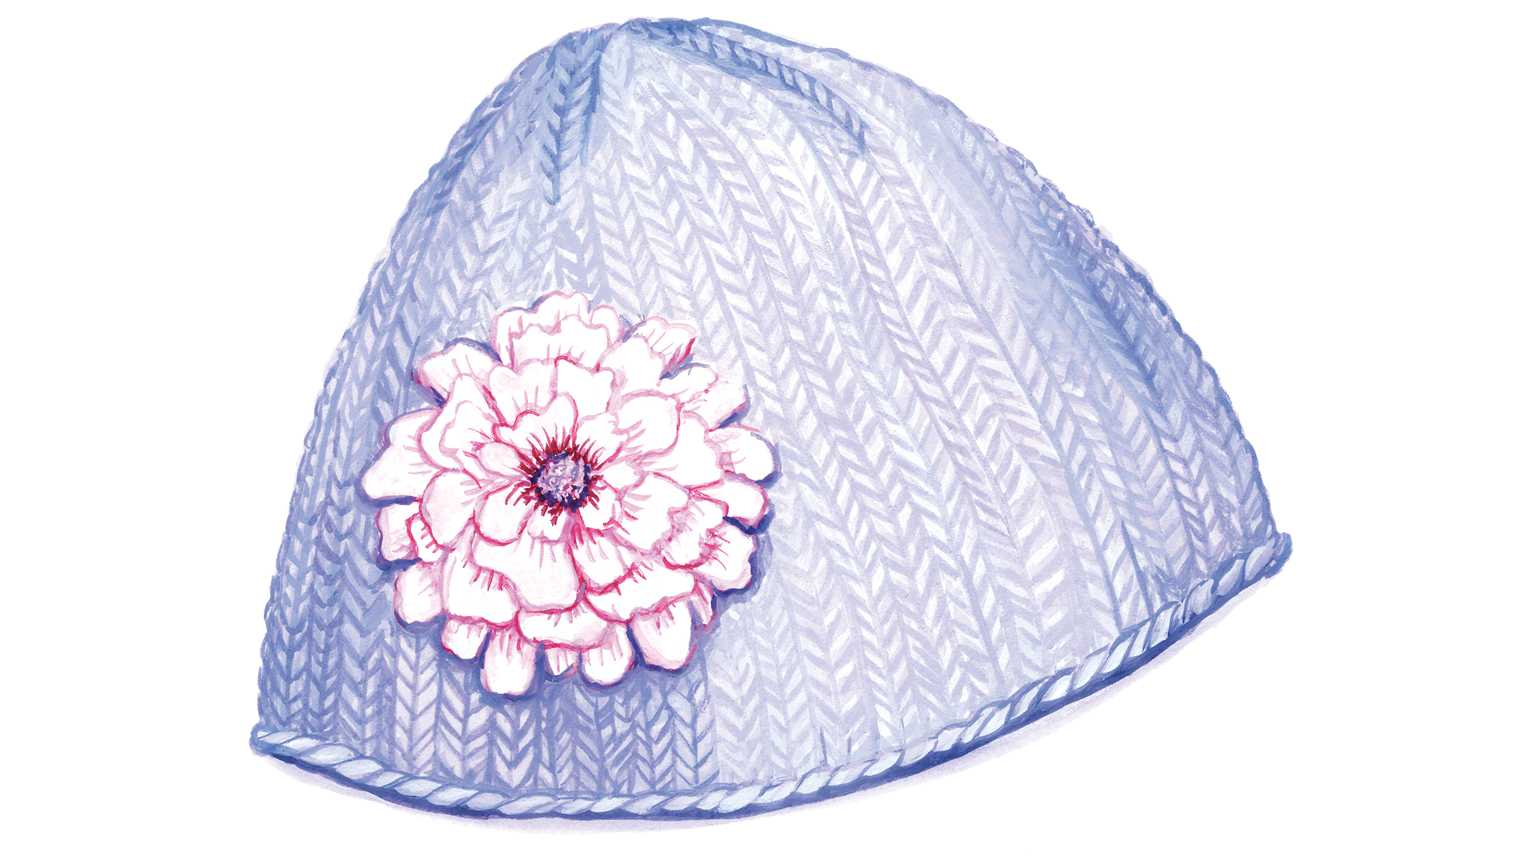 A lavender knitted hat with a large flower; Illustration by Jessica Allen